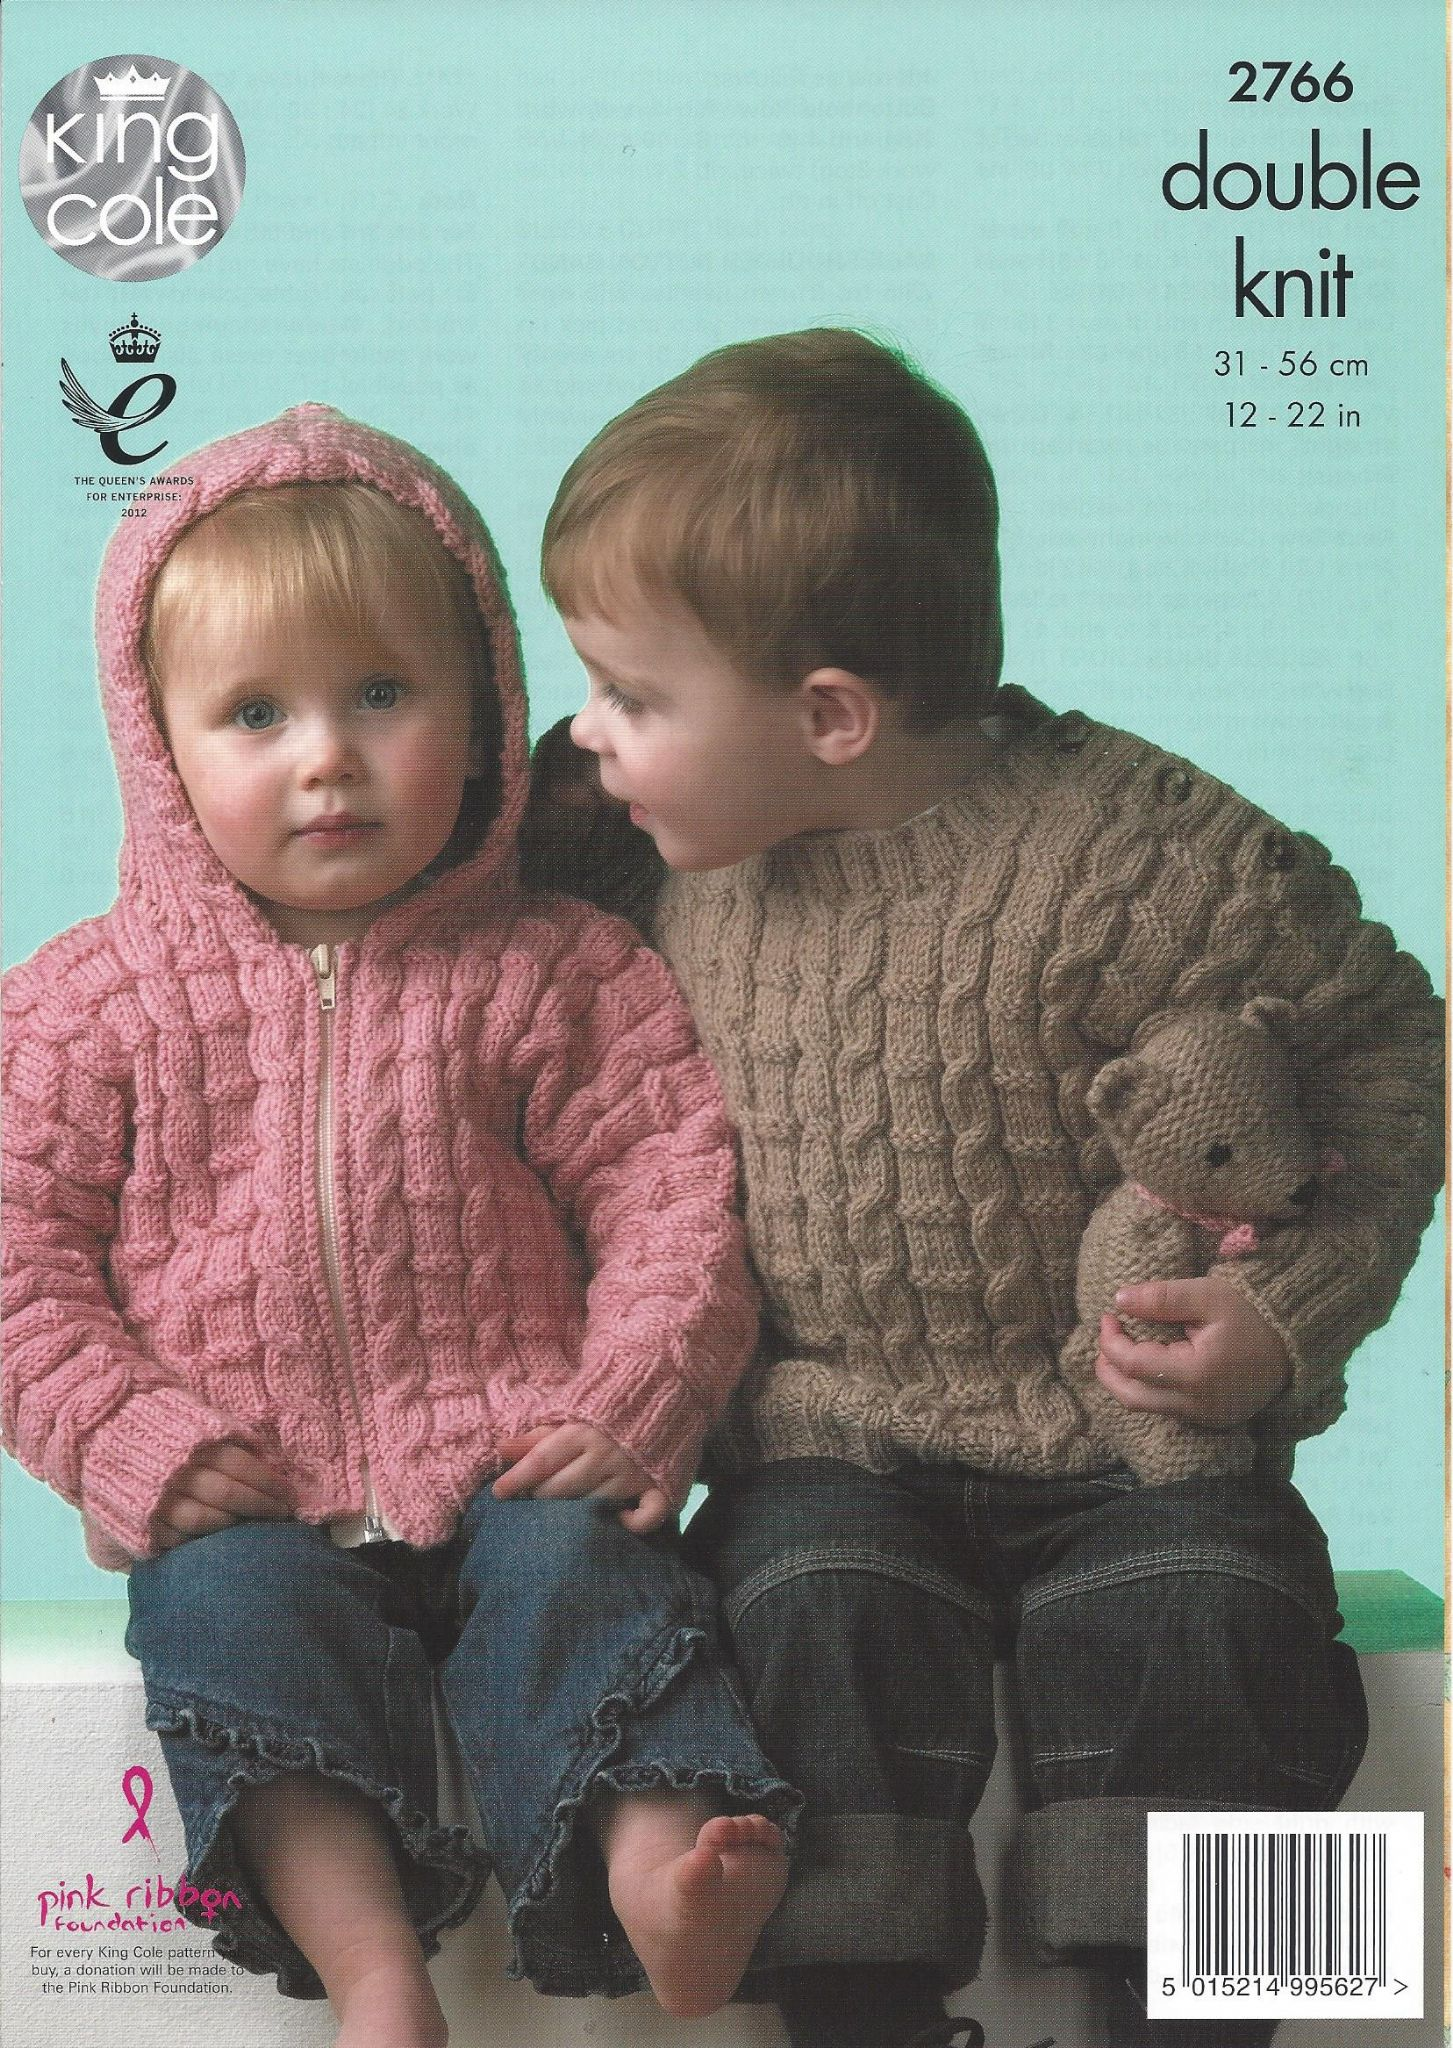 King Cole Baby DK Knitting Pattern - 2766 Sweater Jacket & Sleeping Bag